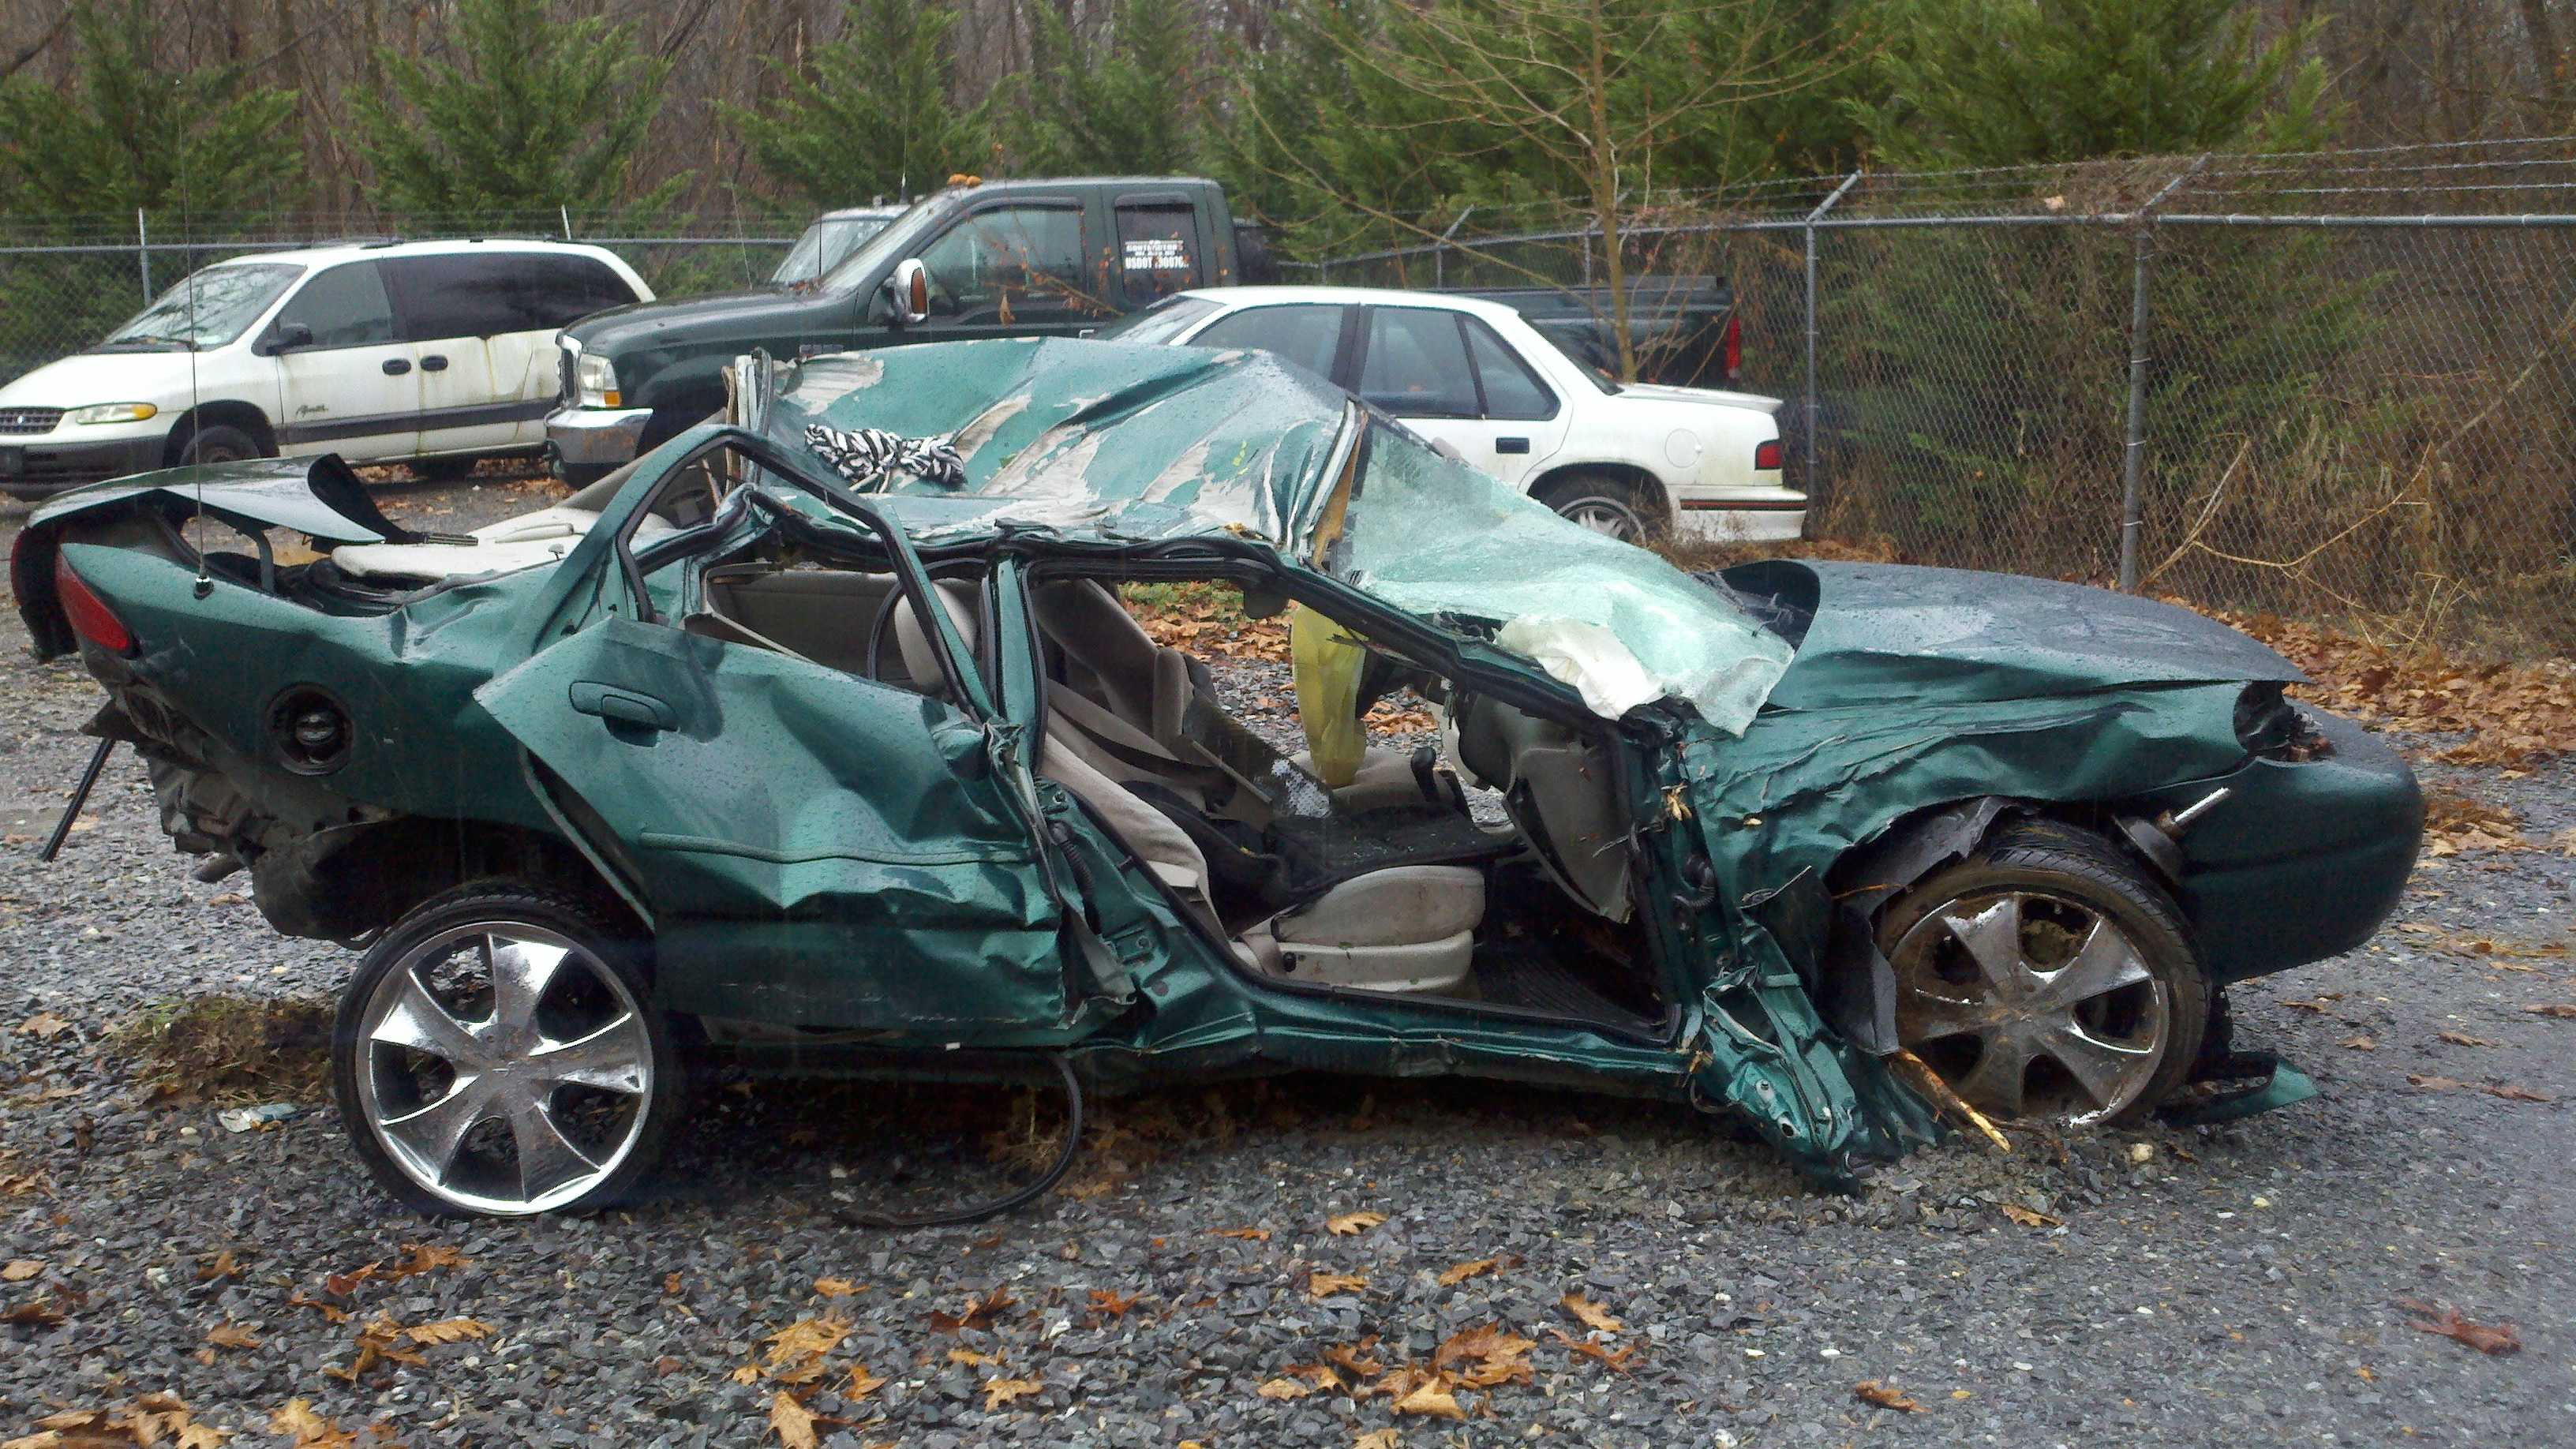 This was the car involved in the crash, according to Surry County EMS director John Shelton.